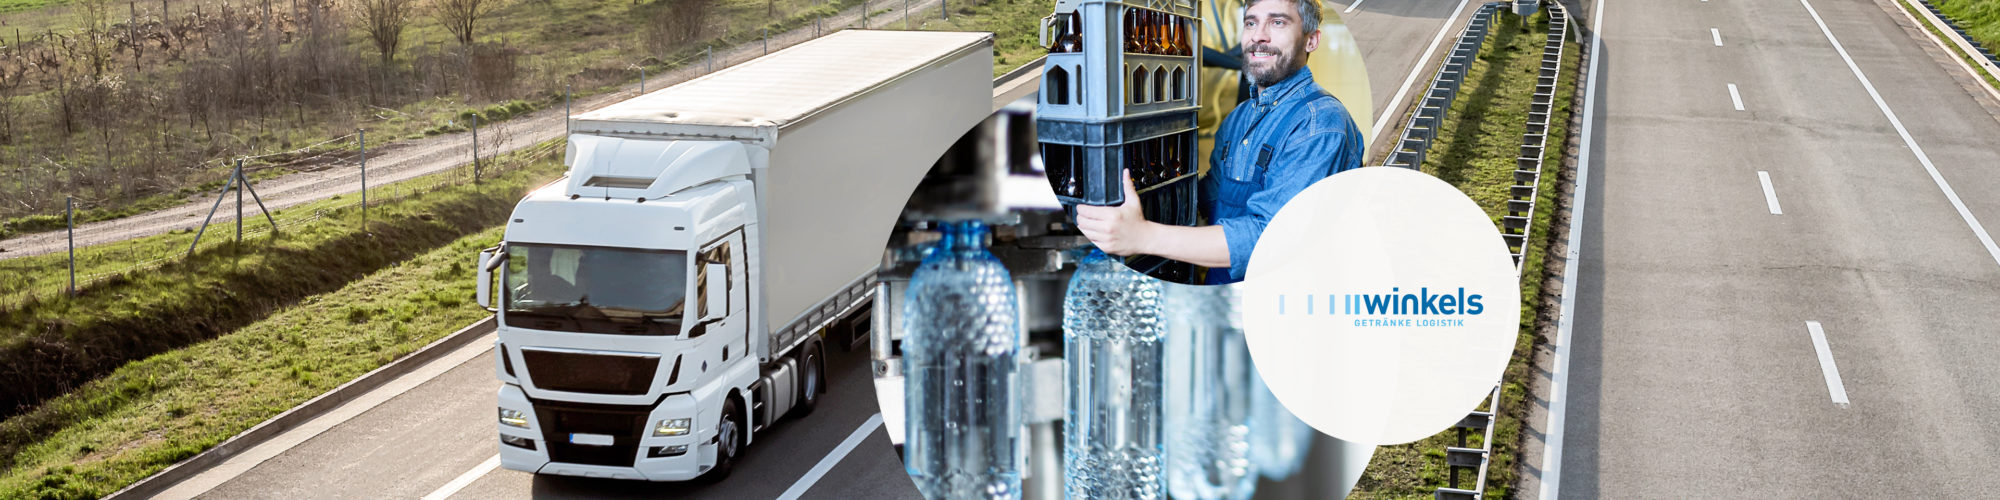 Image of a truck and a man who carries crates of drinks, including a picture from the production of the drinks manufacturer Winkels